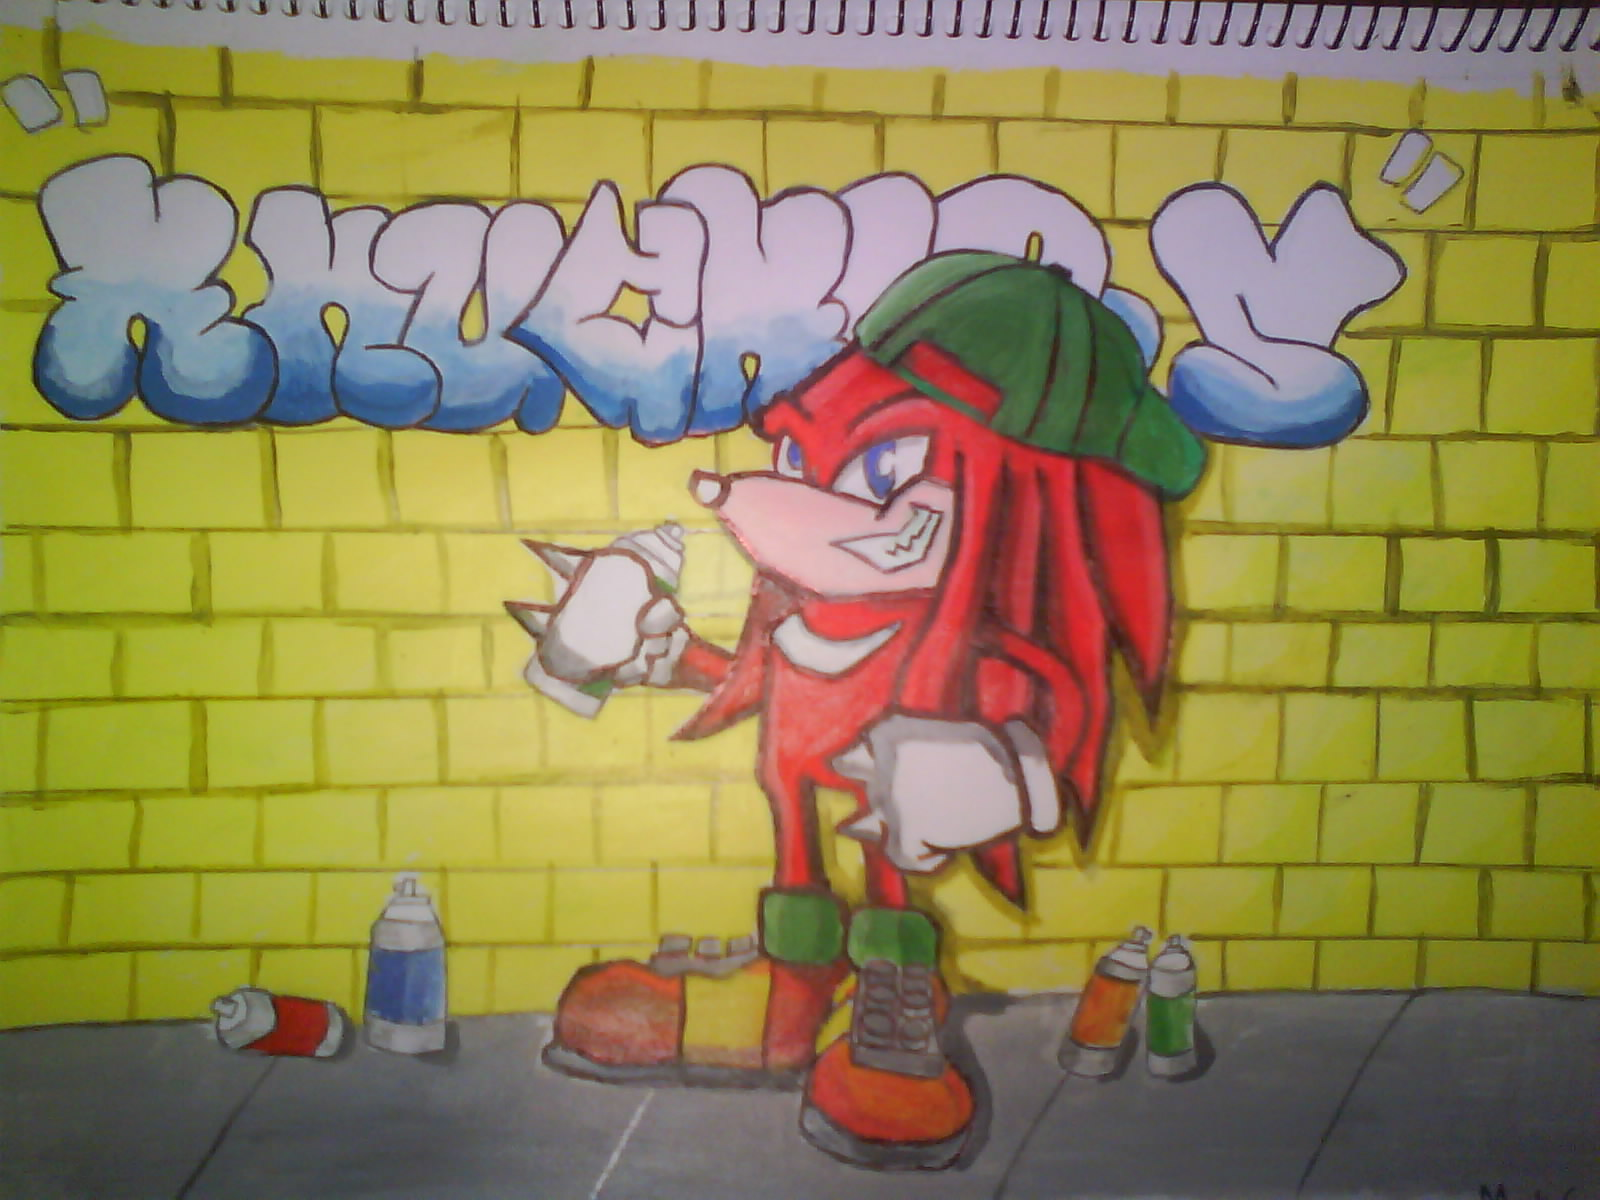 Knuckles!